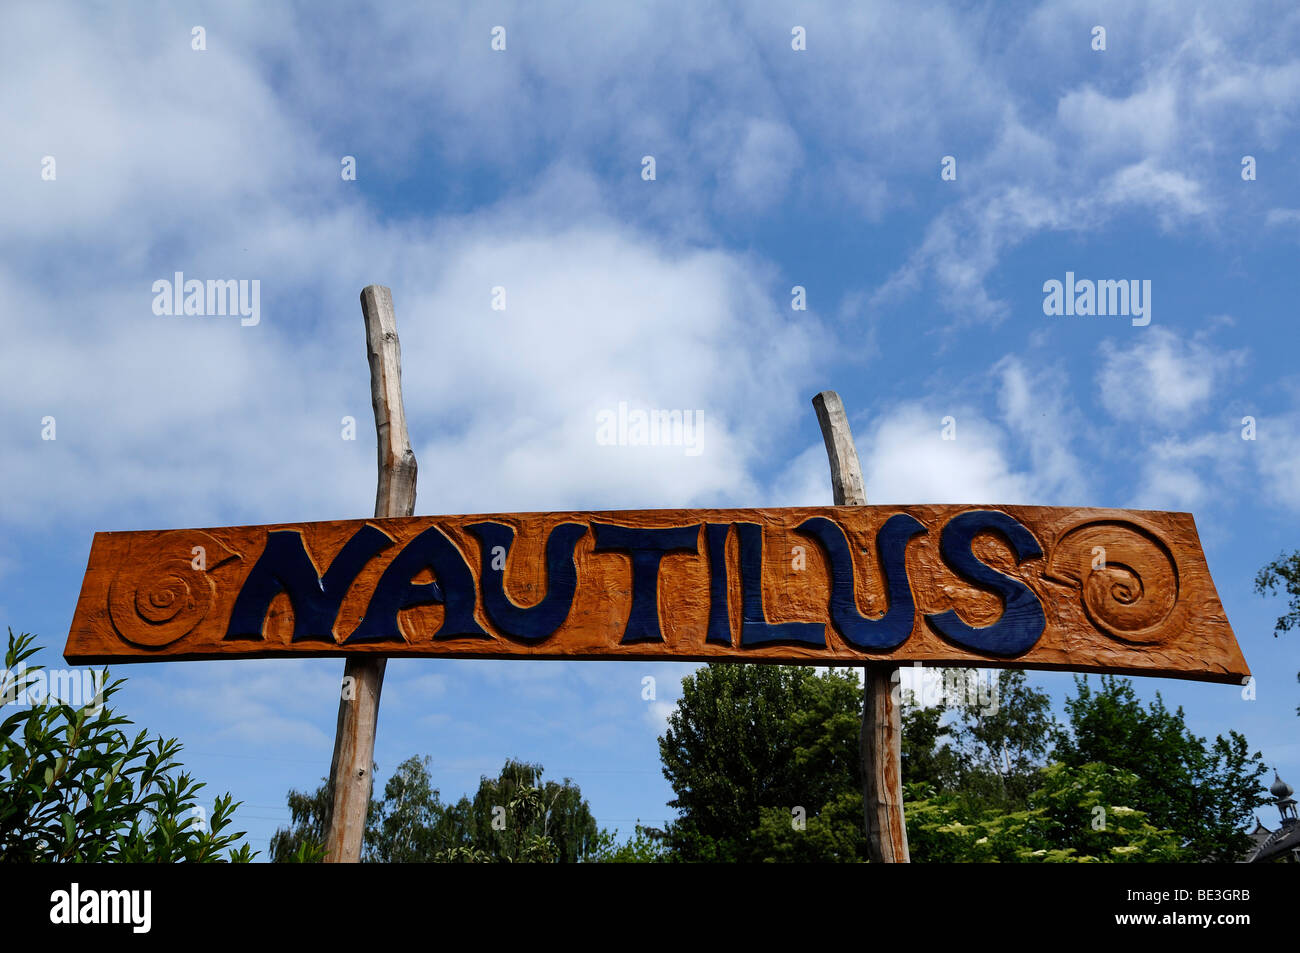 Sign Natilus, name of a playground in the Loebtau district, Dresden, Saxony, Germany, Europe - Stock Image